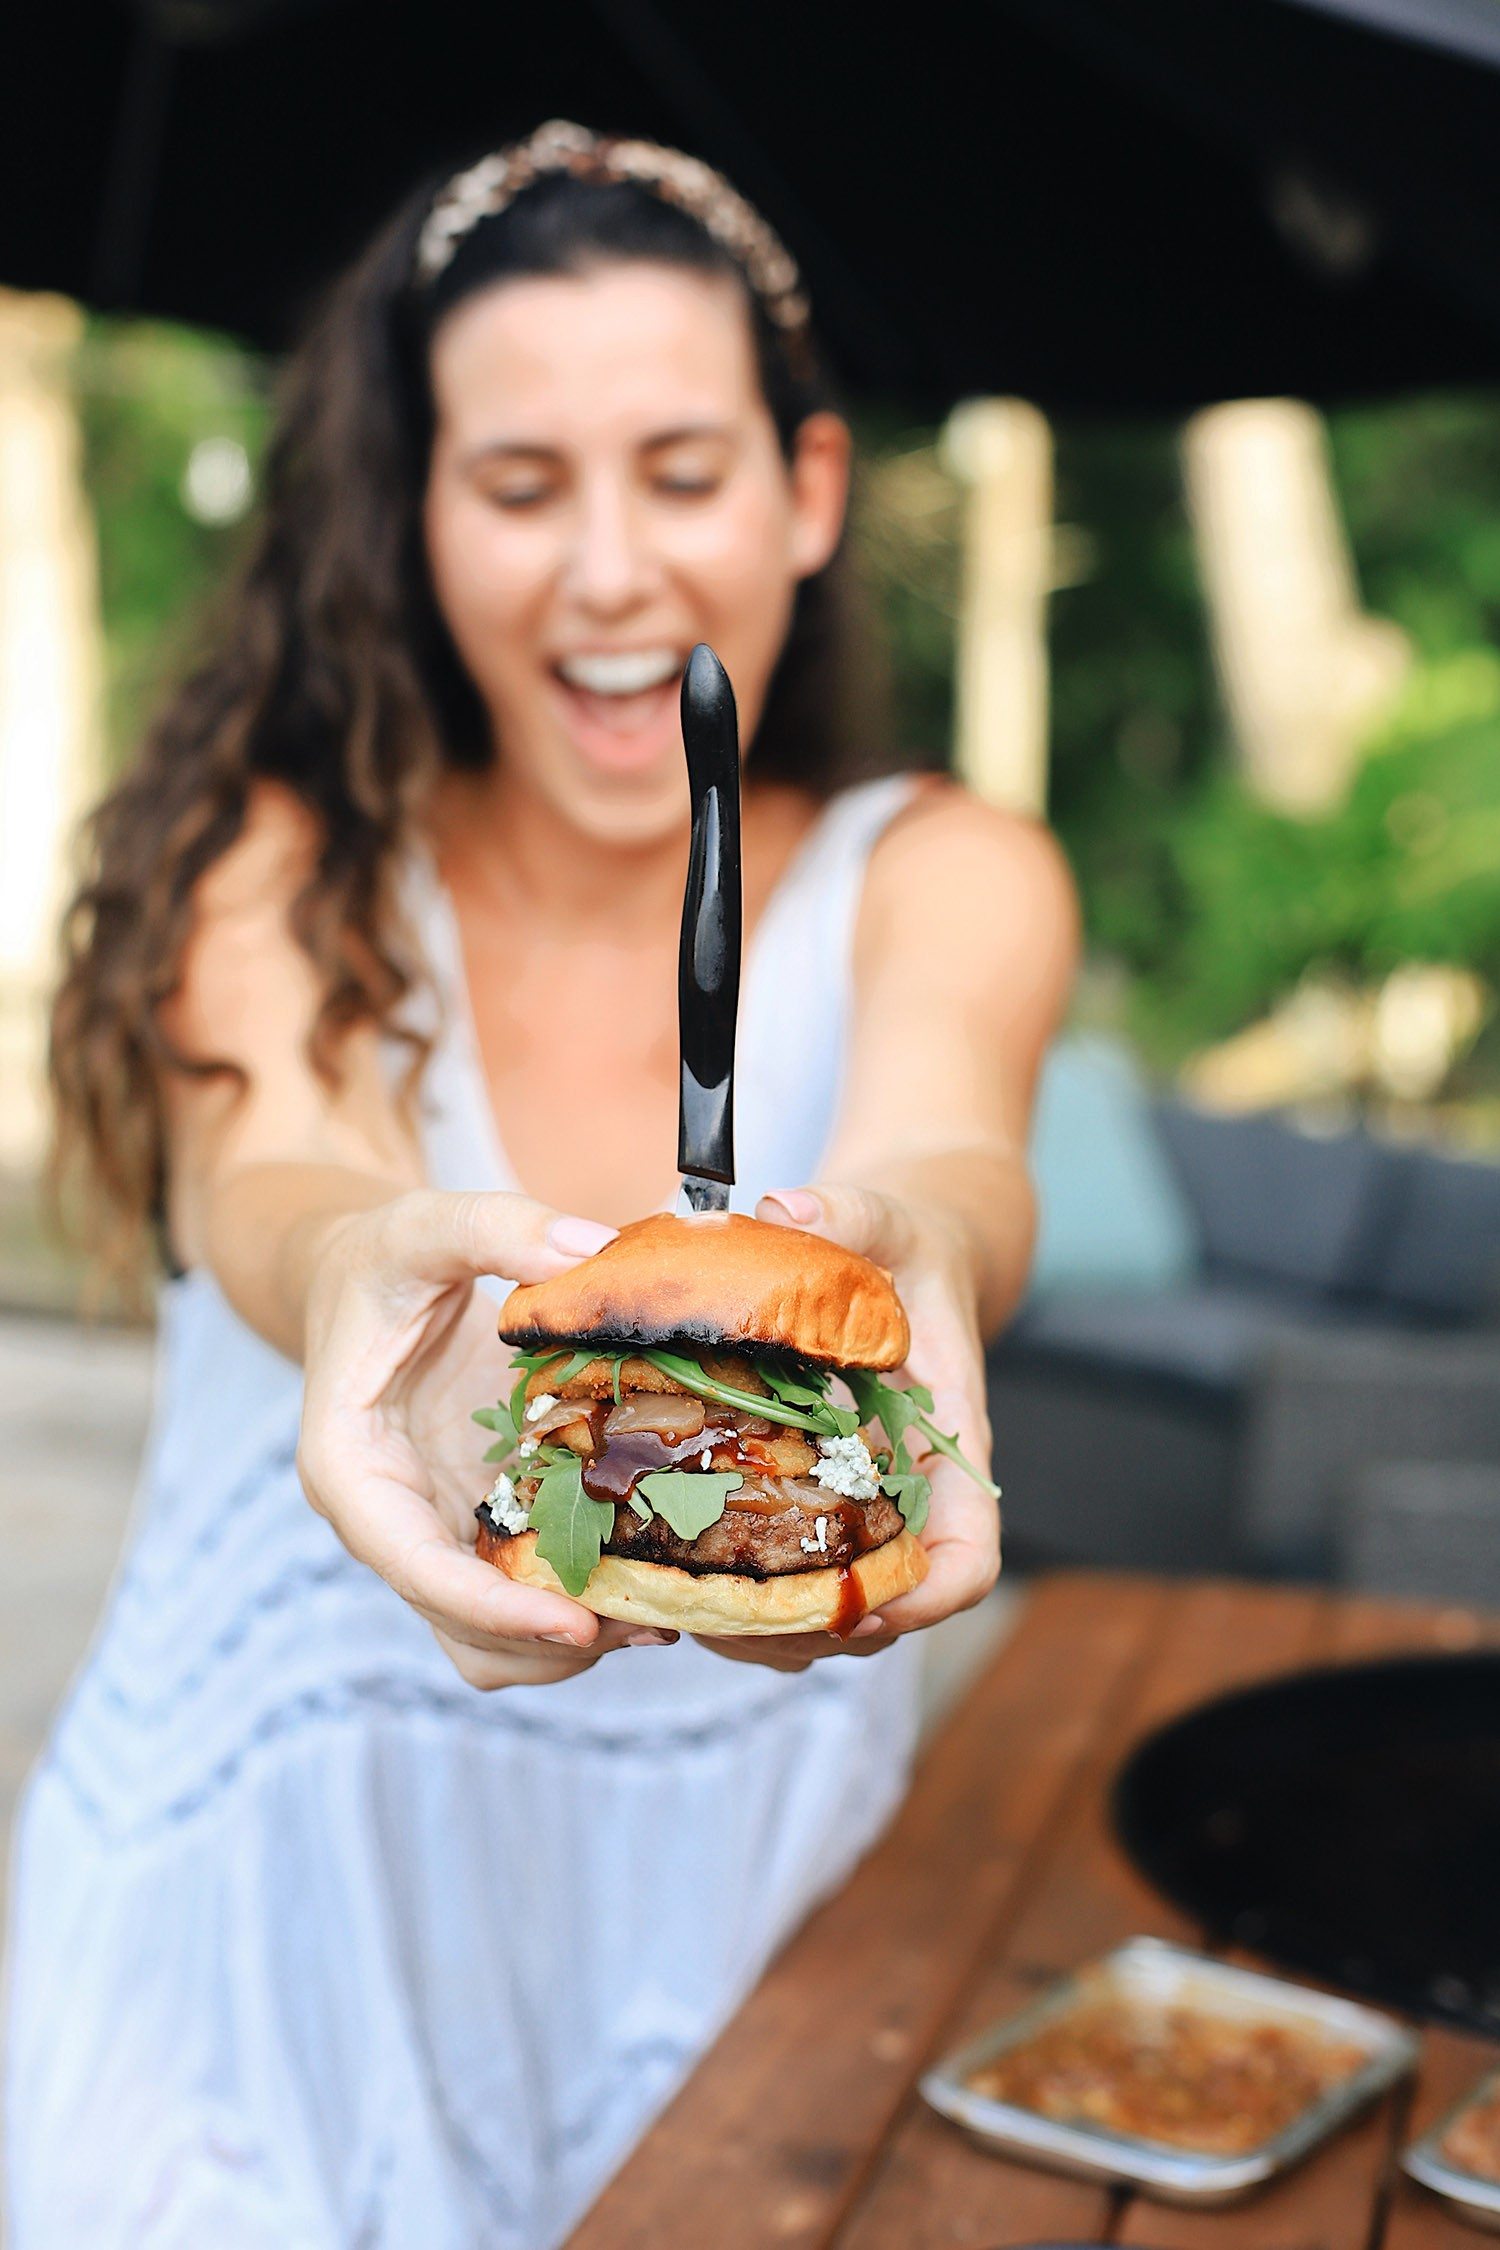 BBQ Bacon Blue Burger for a Tasty Backyard Barbecue. Not your average burger! Juicy beef burgers seasoned with a the perfect amount of spice, topped with smoked bacon jam, sweet bourbon onions, arugula, blue cheese, onion rings, BBQ sauce and a buttery grilled bun! | BBQ Burger by popular Florida lifestyle blog, Fresh Mommy Blog: image of Tabitha Blue holding a BBQ Burger with bacon and blue cheese.